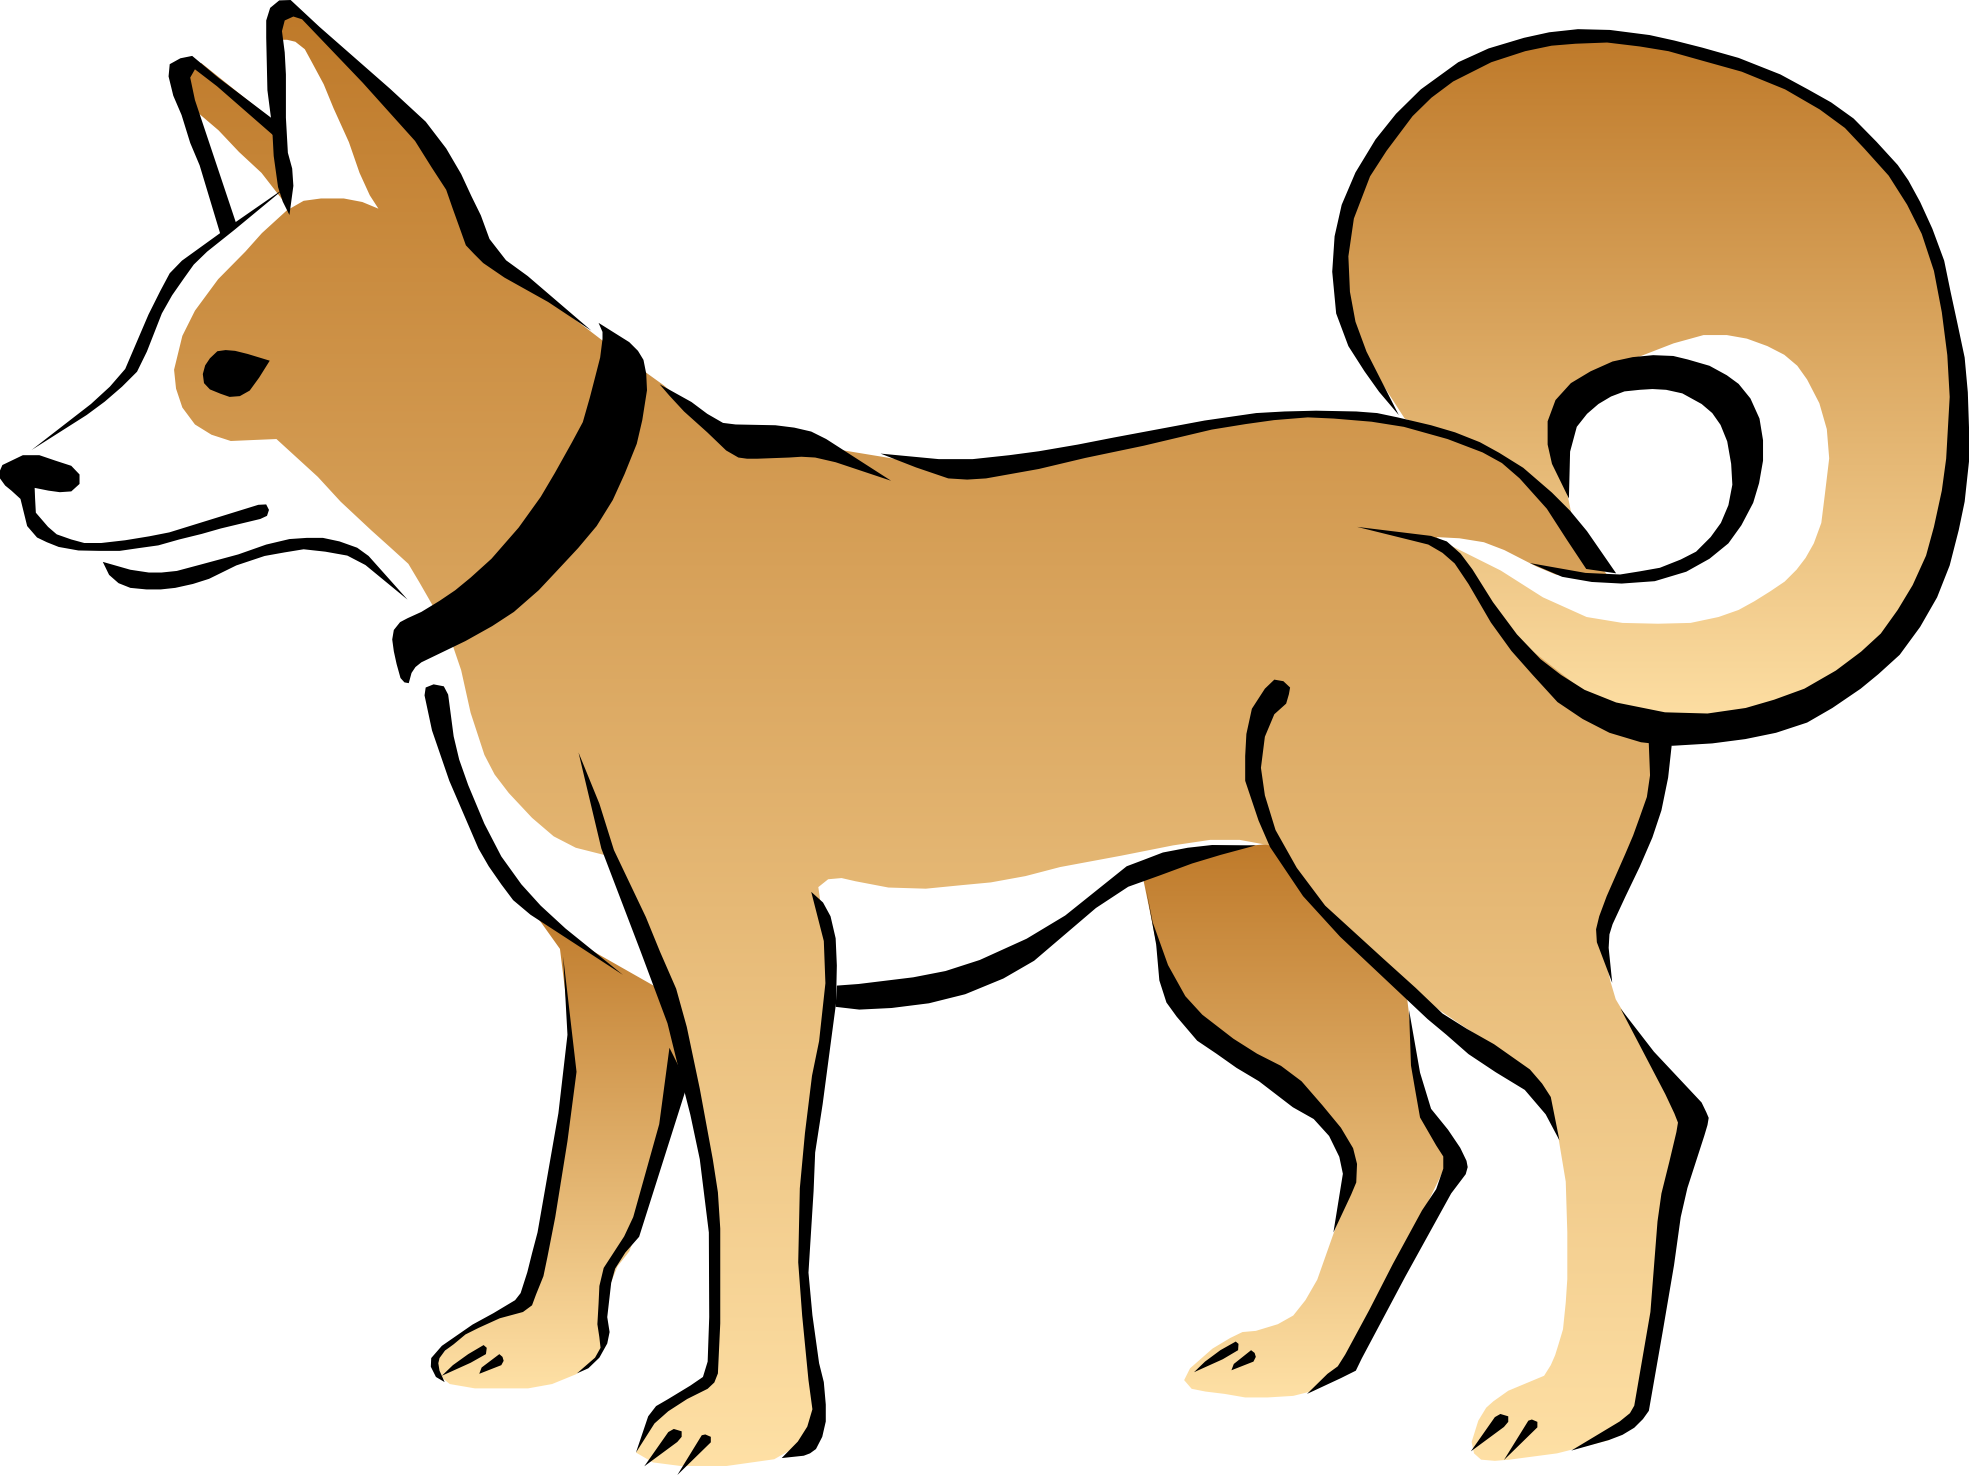 Dog whiskers clipart. Cute and cat clip